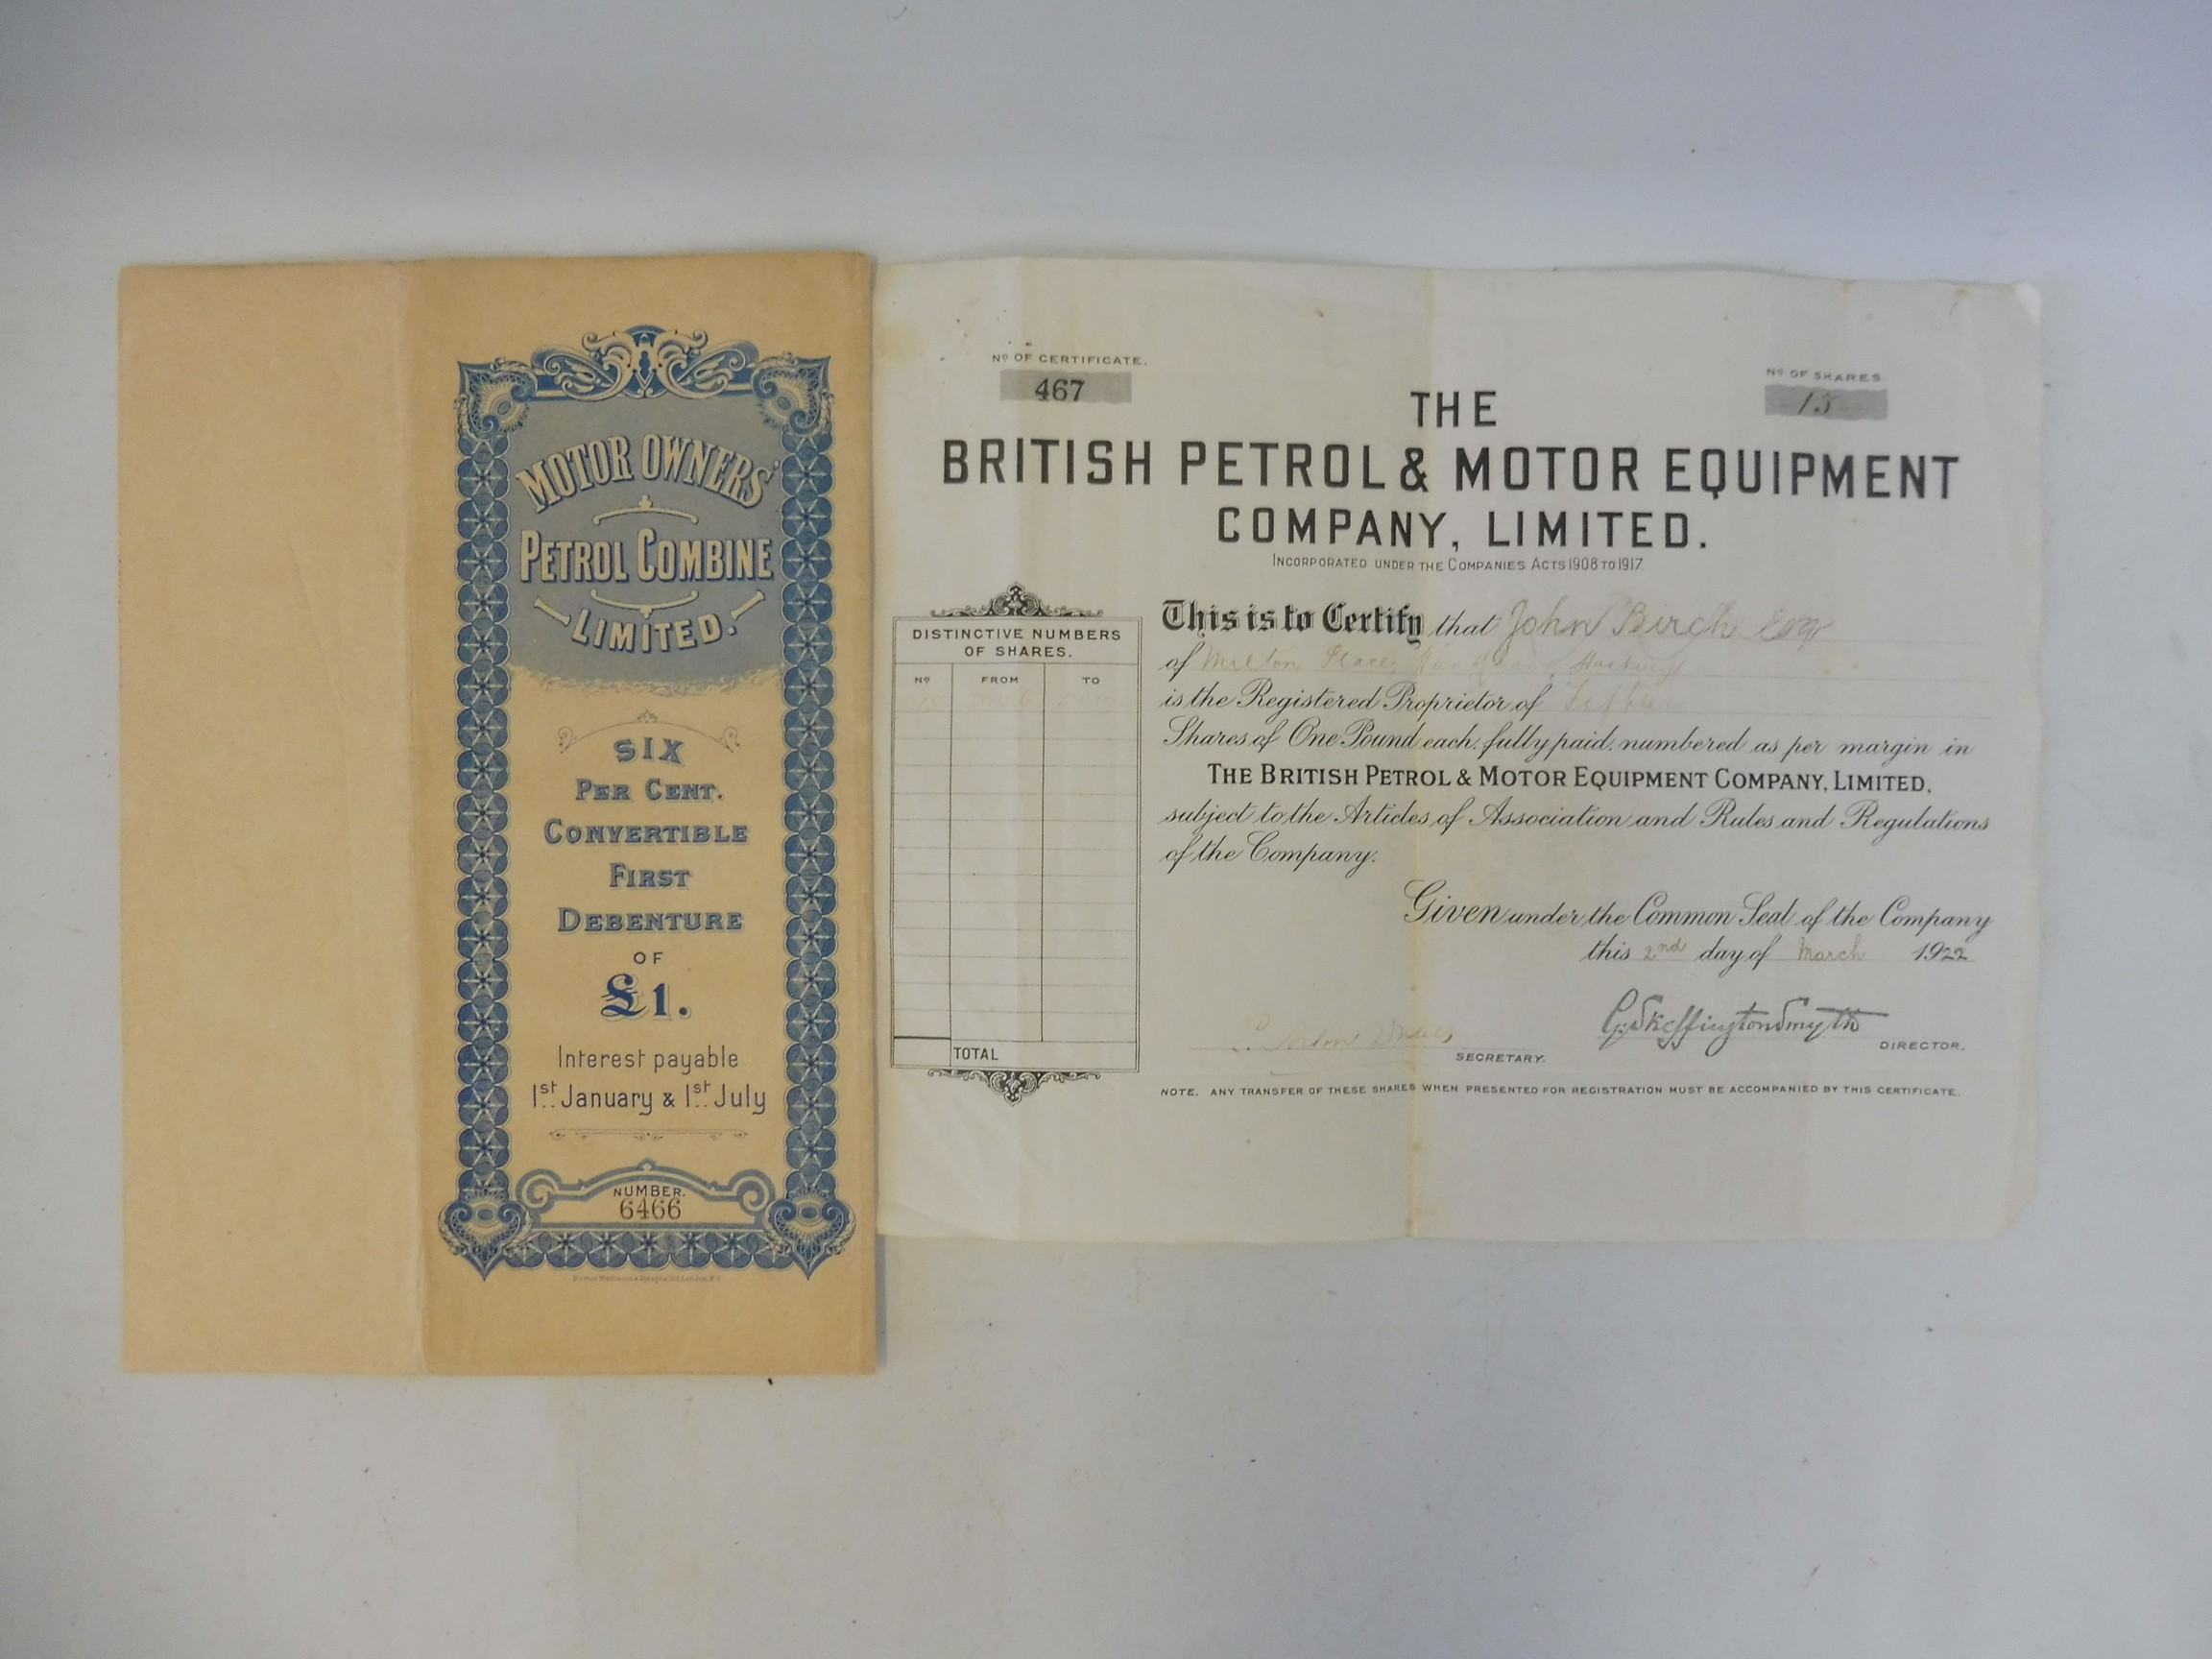 A share certificate for The British Petrol and Motor Equipment Company Limited dated March 1922